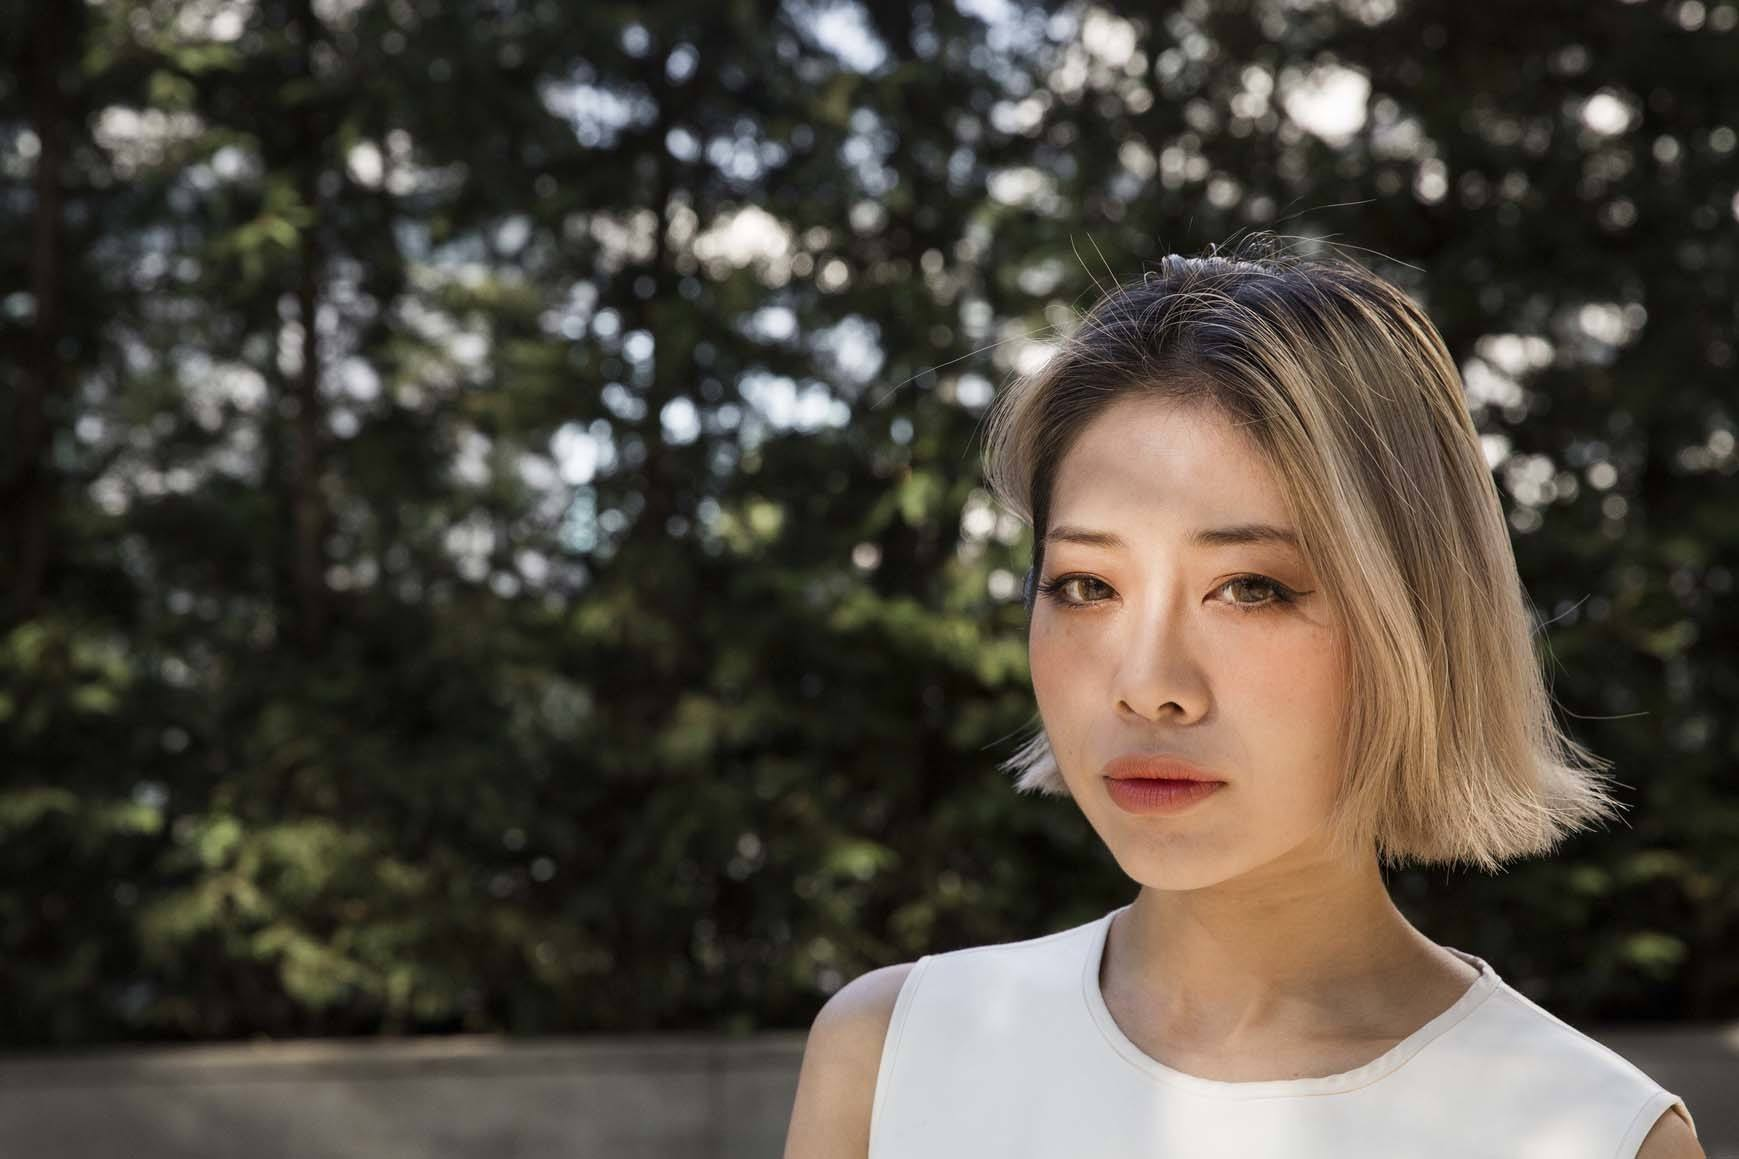 Hair color for fair skin: Asian woman with golden short hair and fair skin with trees in the background